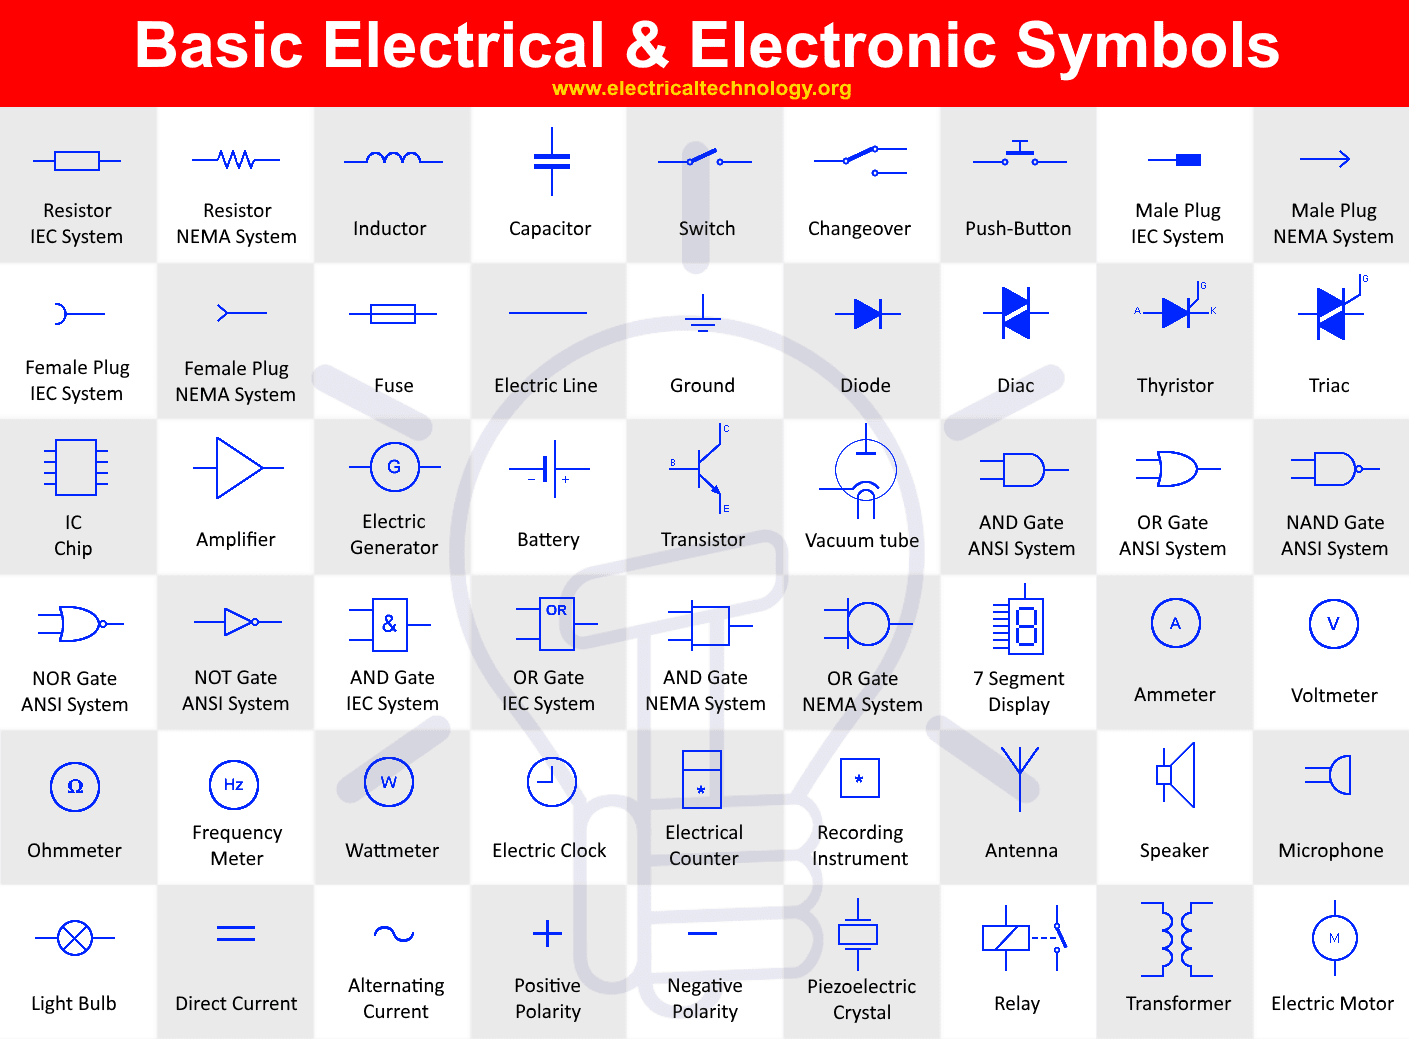 Basic Electrical and Electronic Symbols